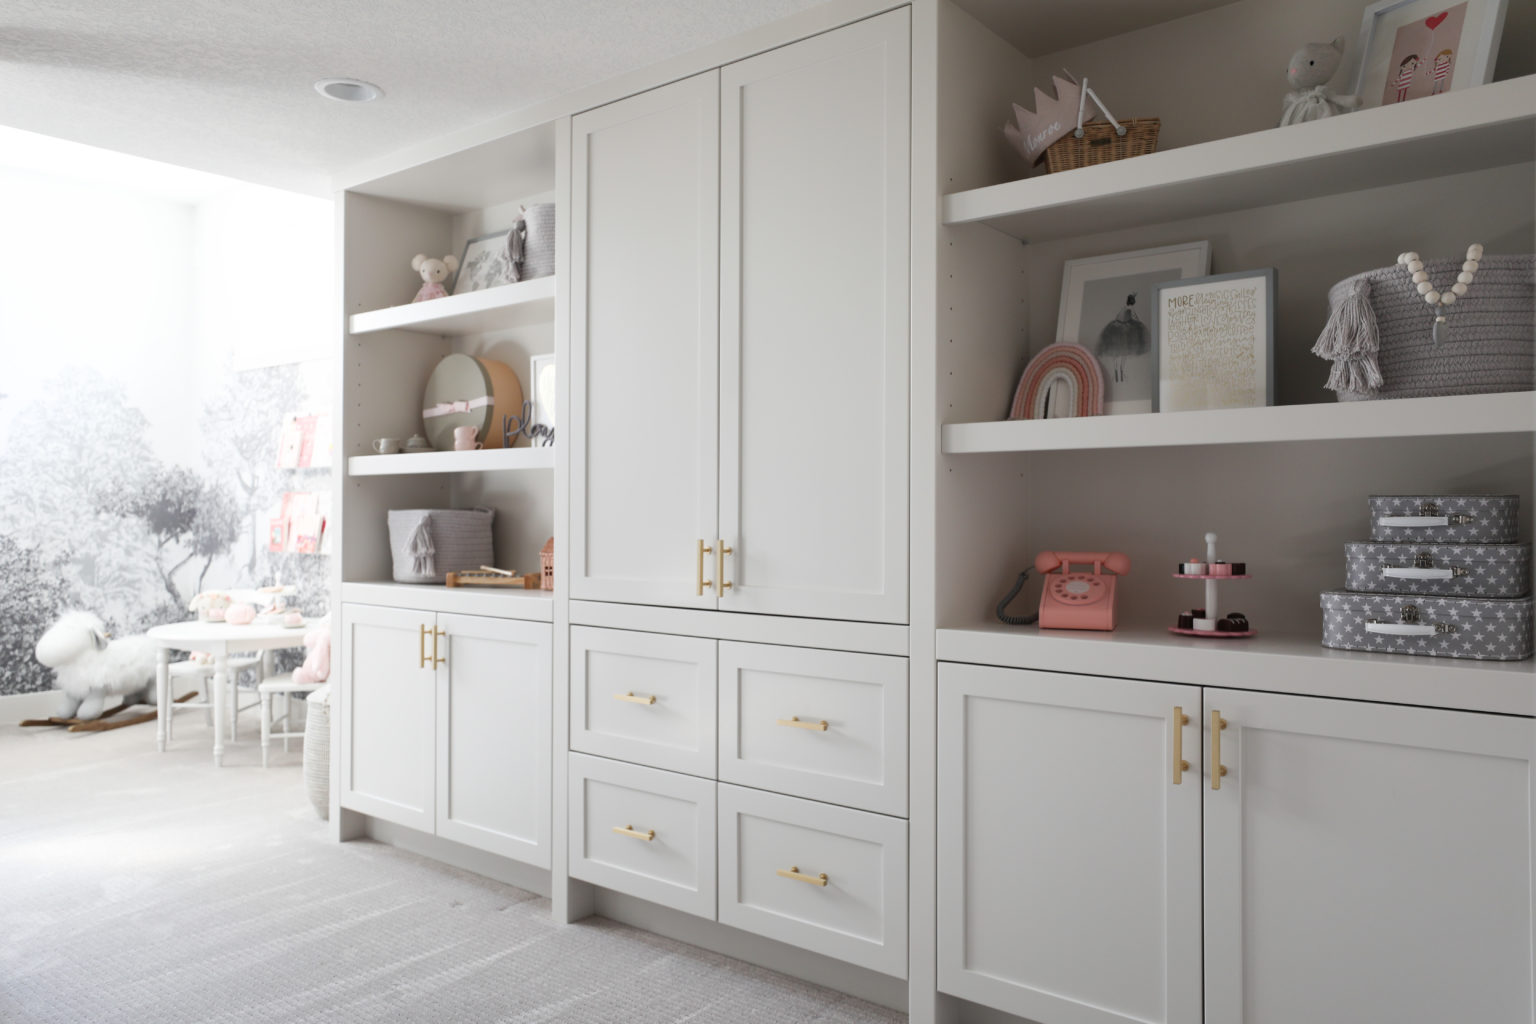 Monochromatic Playroom with Built-in Shelves